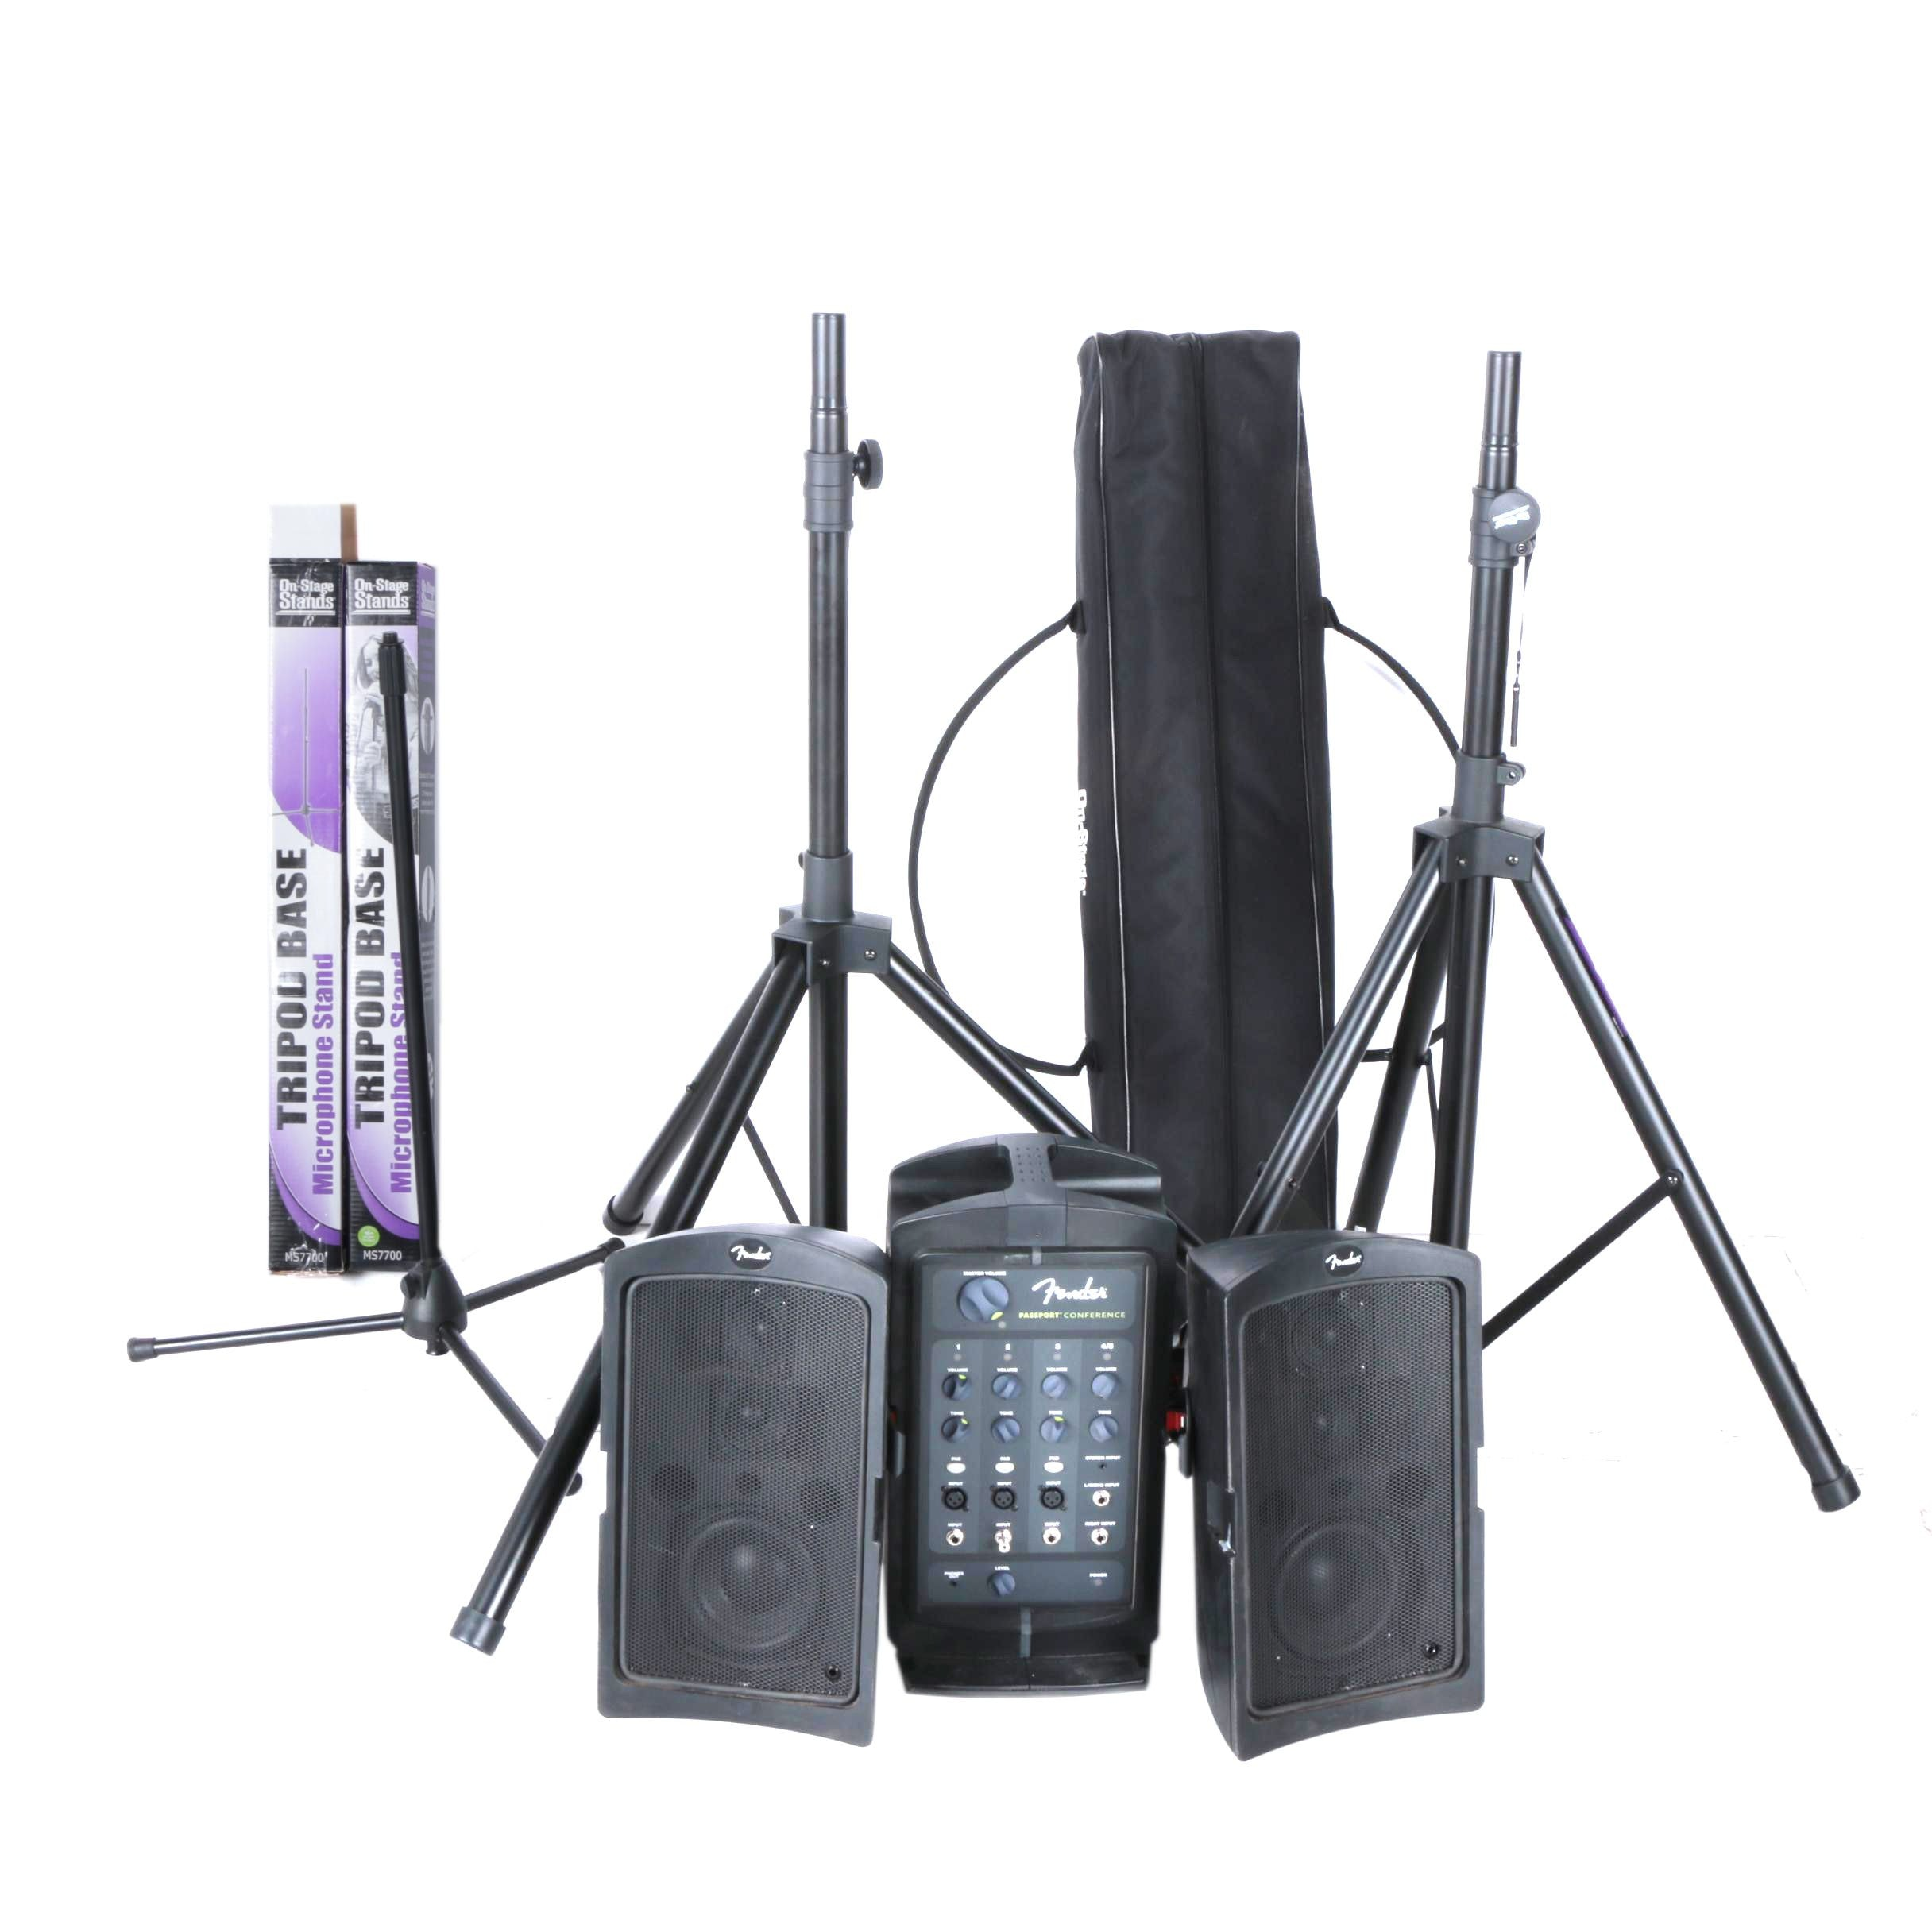 Fender Passport Conference Sound System with Microphone Stands